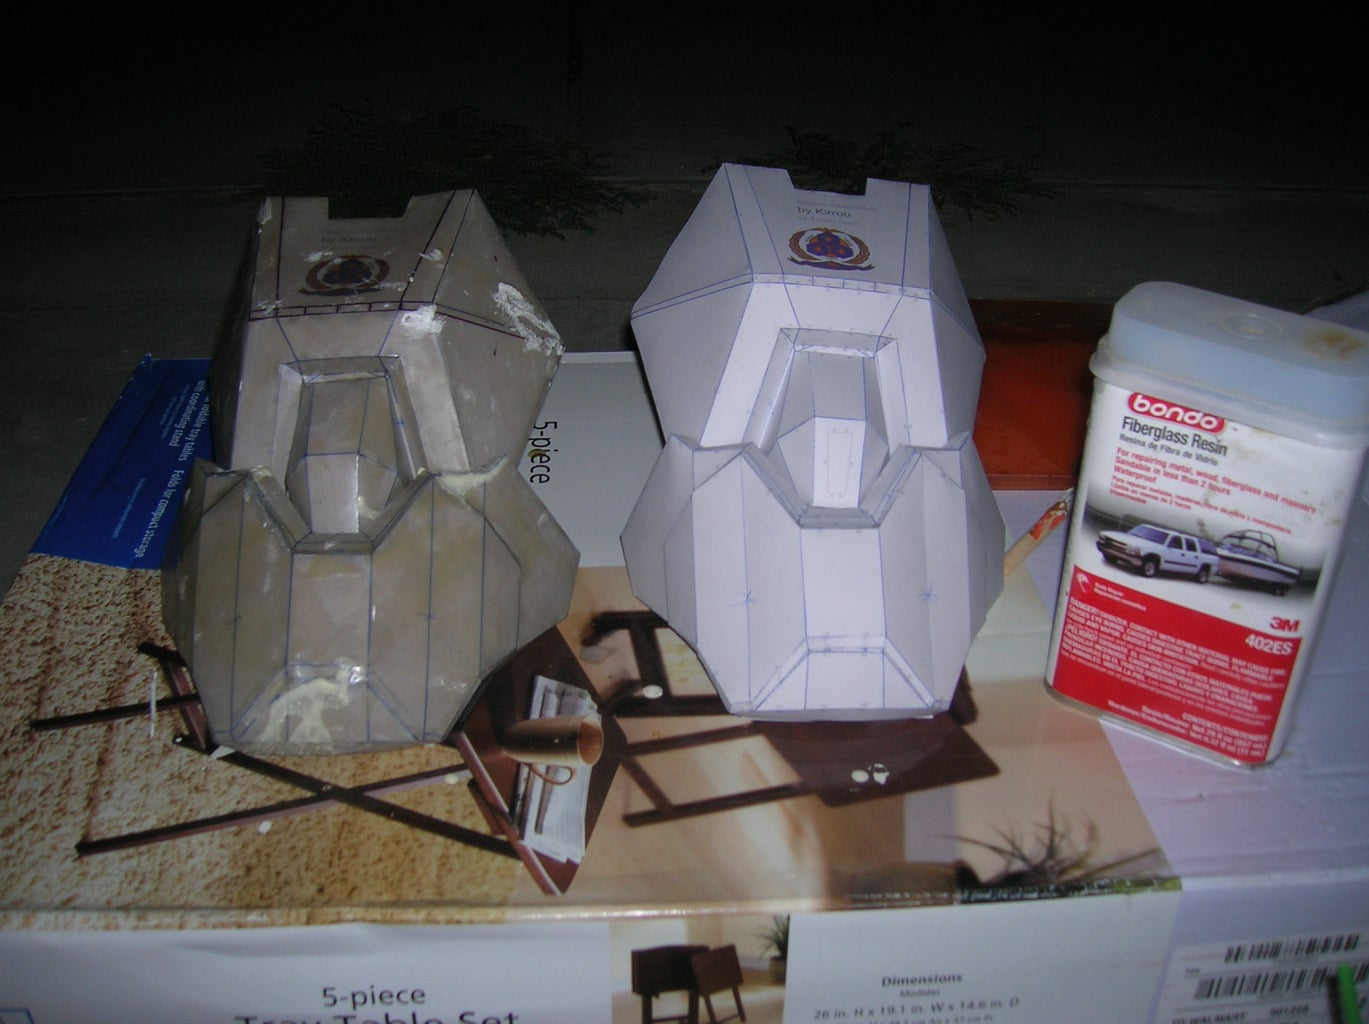 Halo ODST Armor: Arms - Part of ODST Armor Build